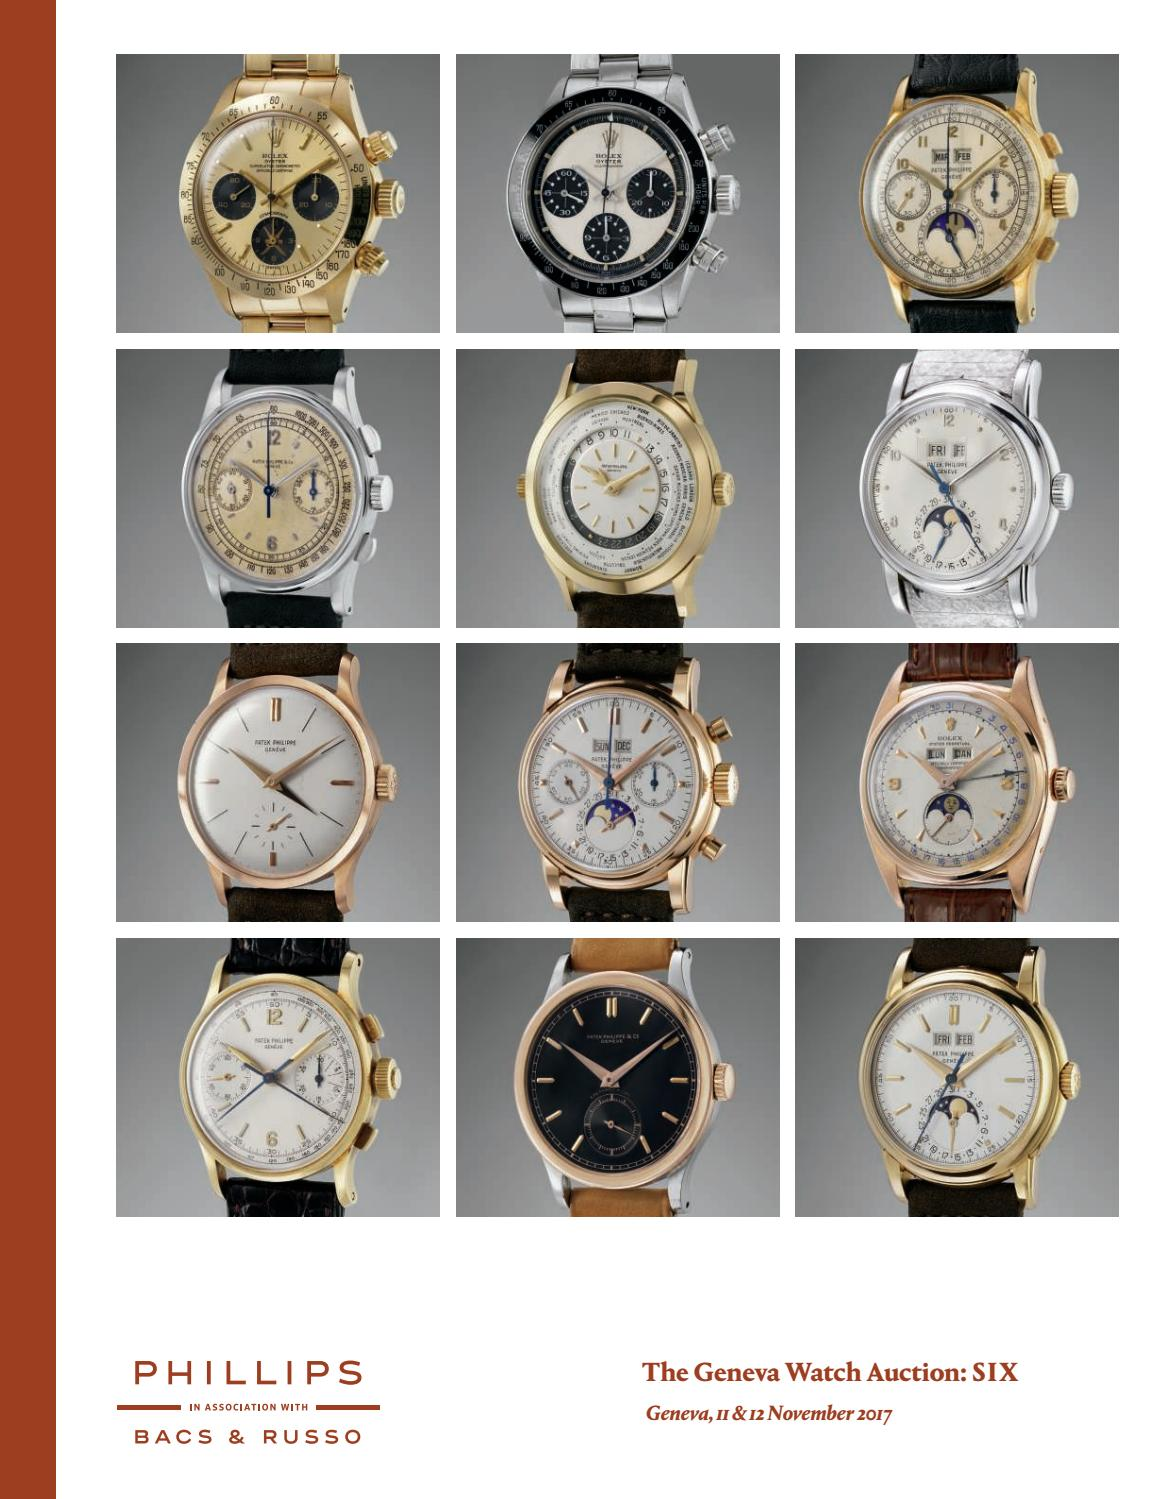 the Liberty Watch: Our Countrys Most Priceless Possession